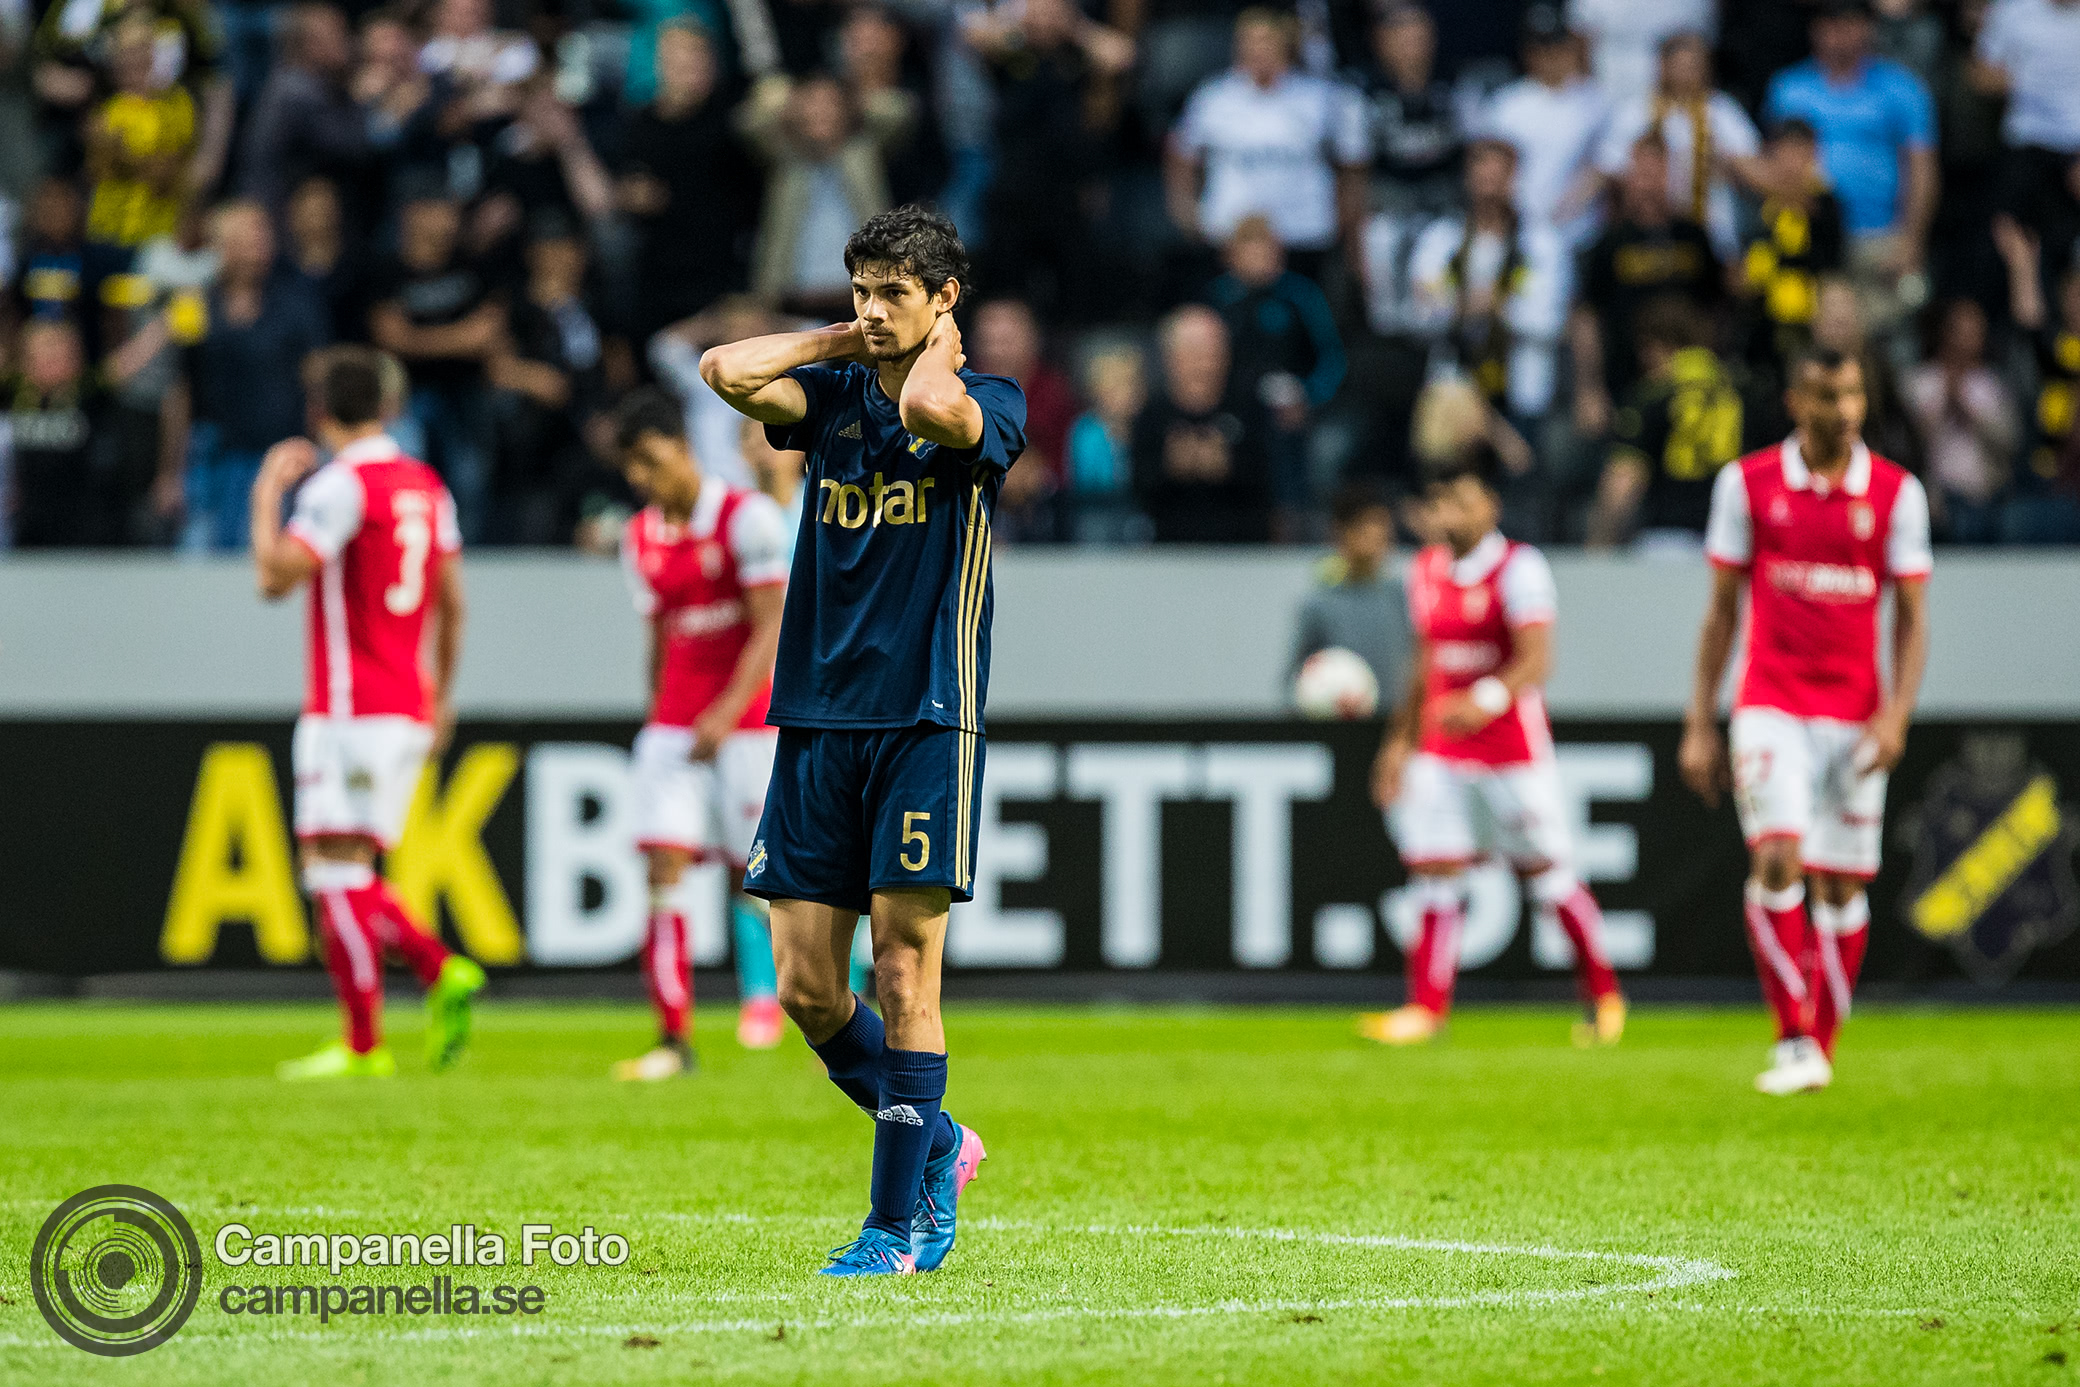 Sundgren penalty keeps hope alive for AIK - Michael Campanella Photography